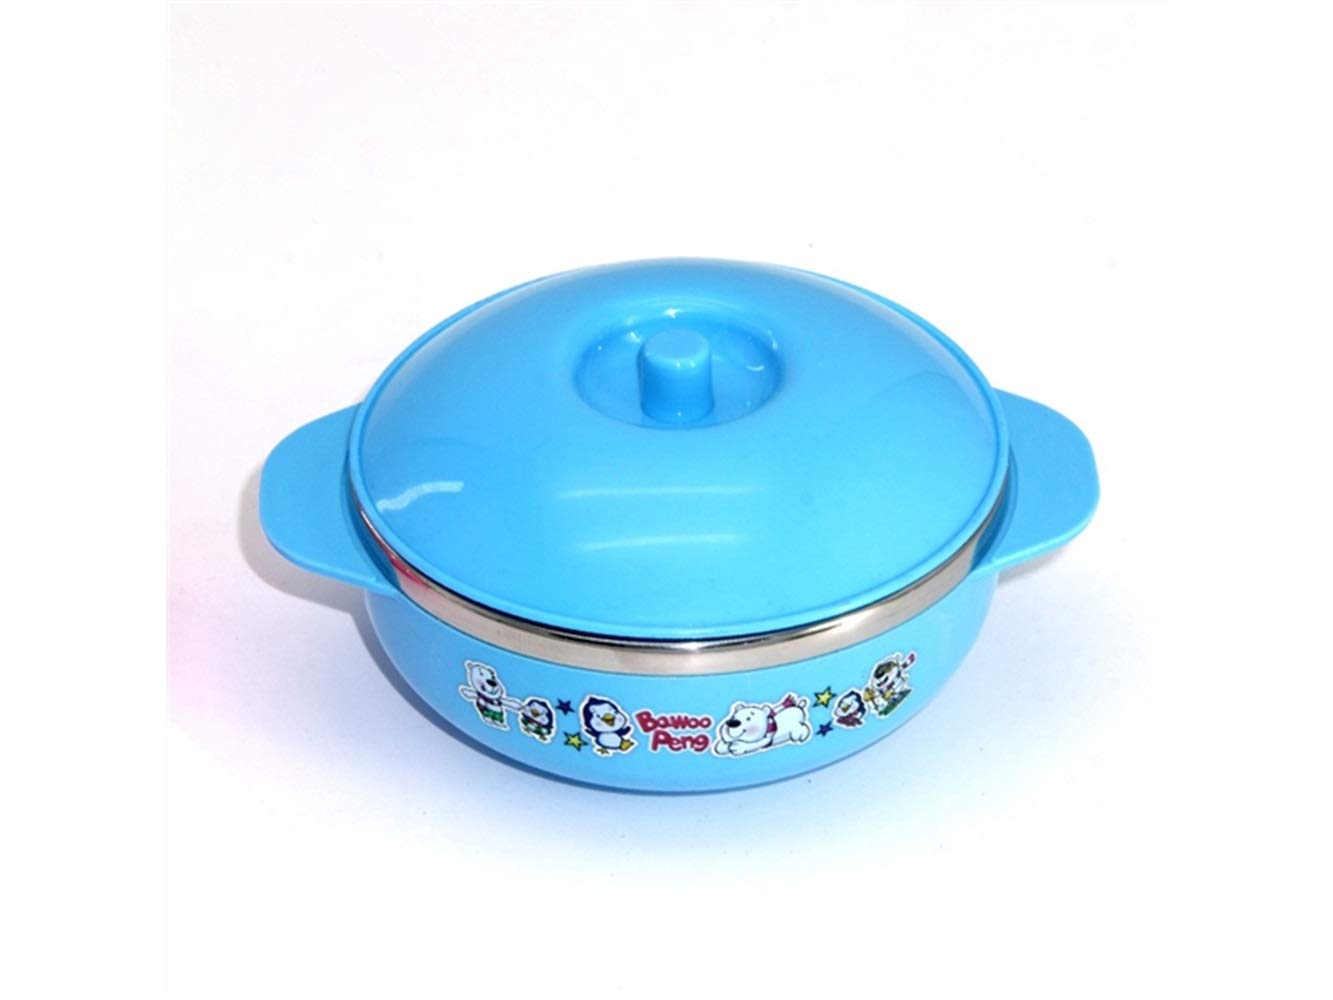 Yuchoi Contemporary Animal Pattern Baby Feeding Bowl Anti-Scald Stainless Steel Children Dish Insulation Bowl with Double Handles for Kids Students(Blue)